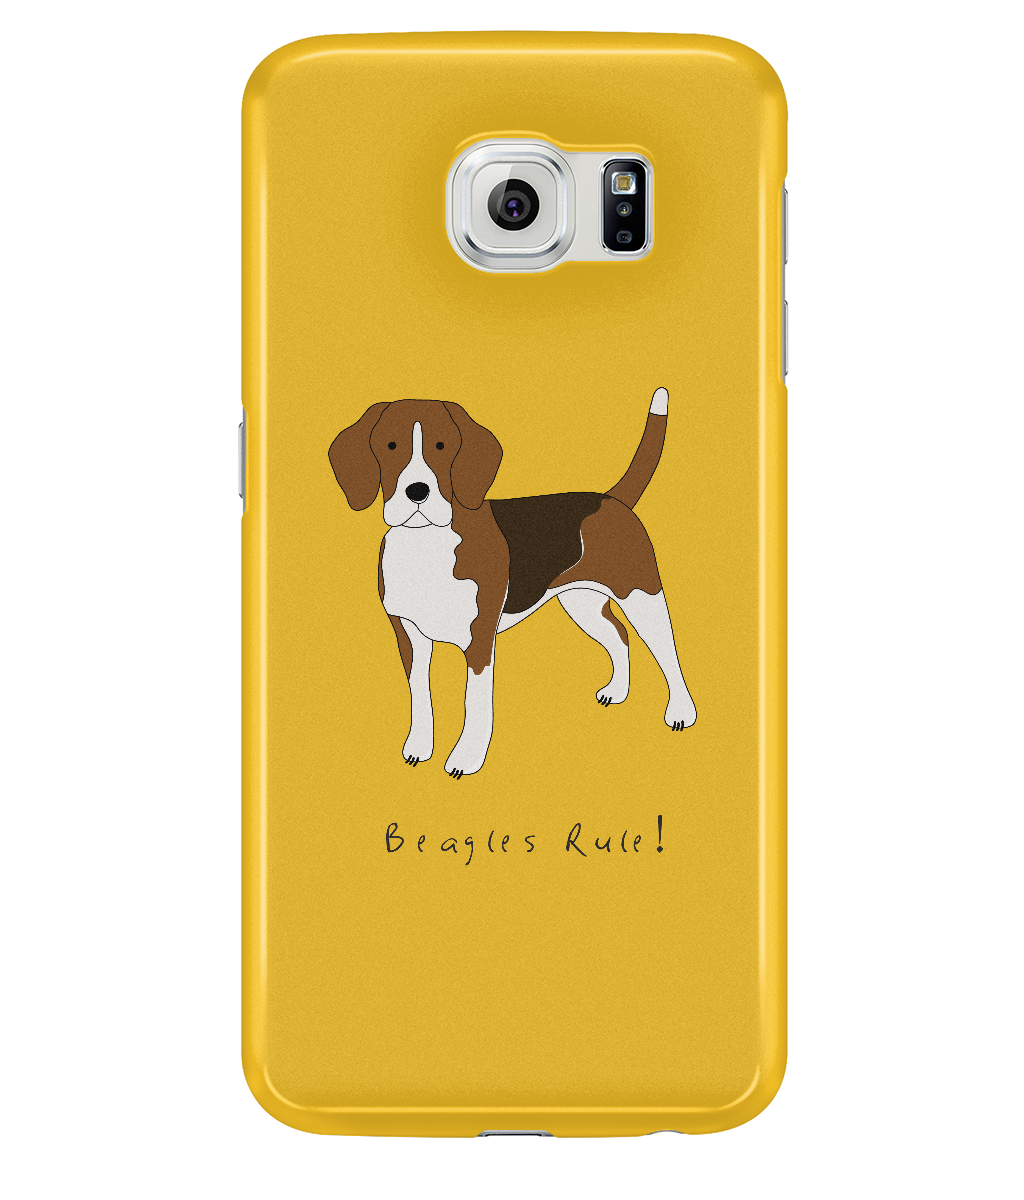 Samsung Galaxy S6 Full Wrap Case - Beagles Rule! - Dogs Rule!